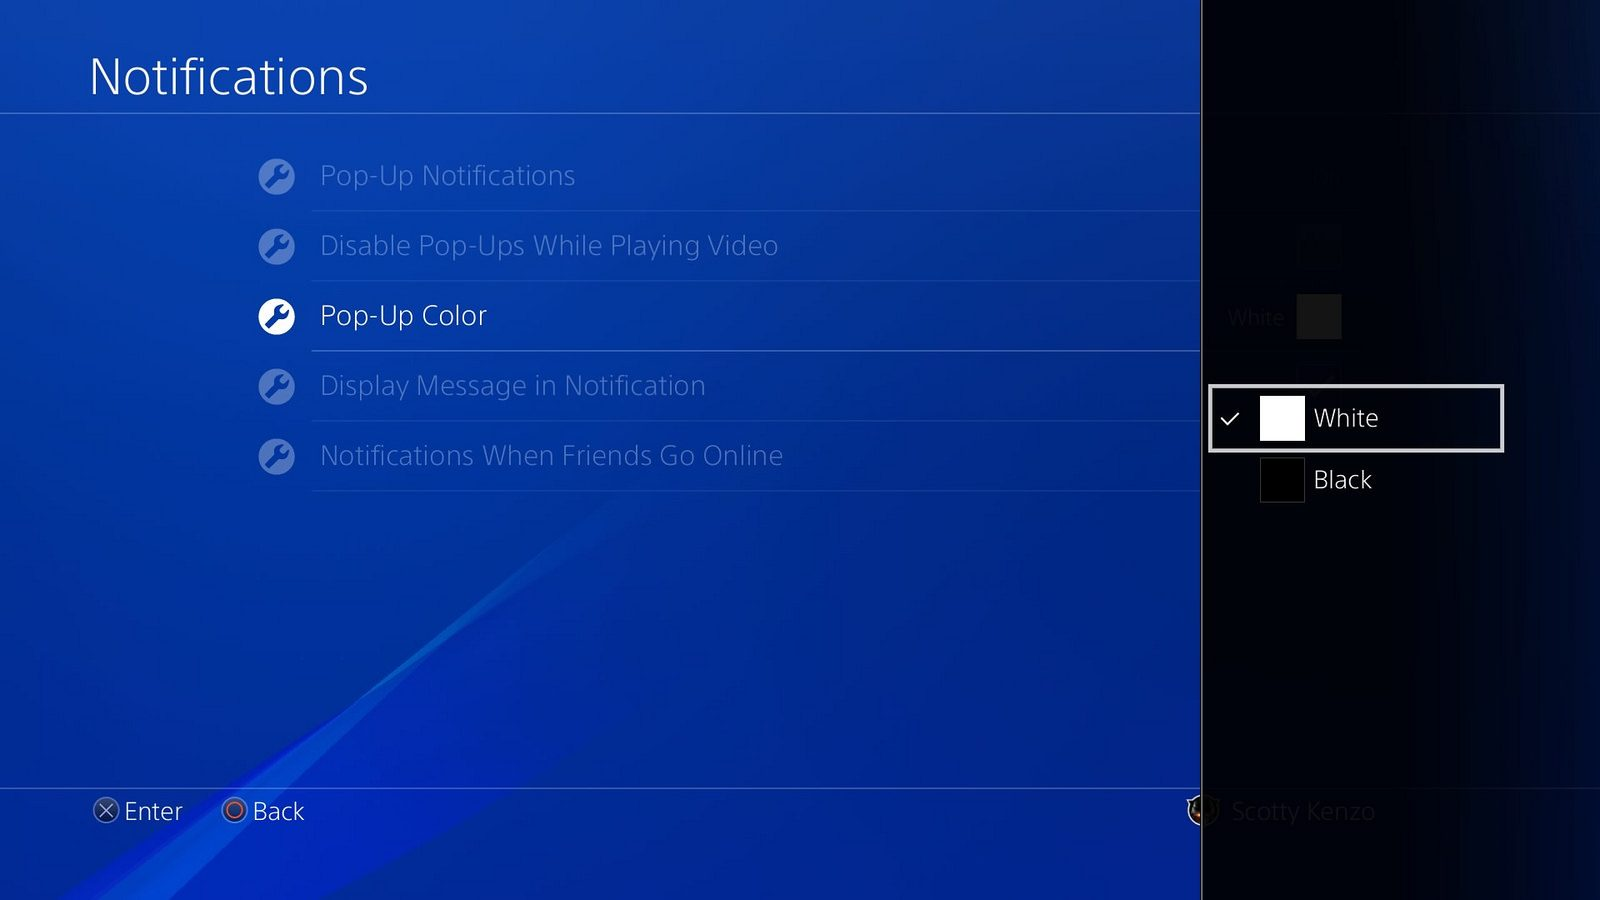 PS4's System Software 5 00 Beta Rolls Out Today, Key